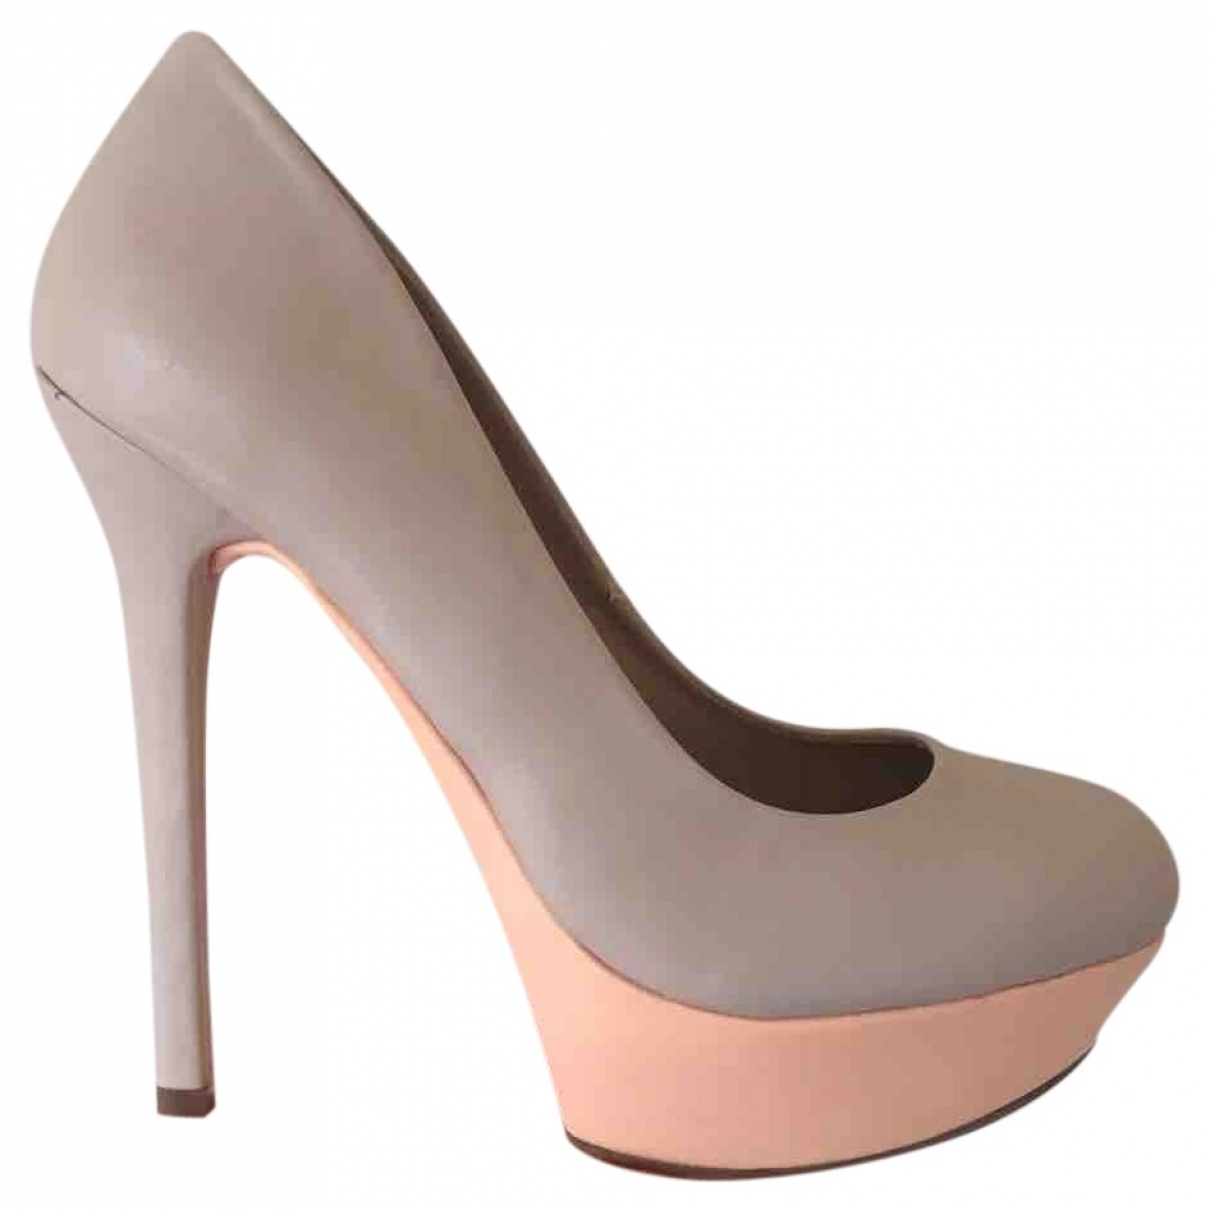 Asos \N Pumps in  Beige Leder